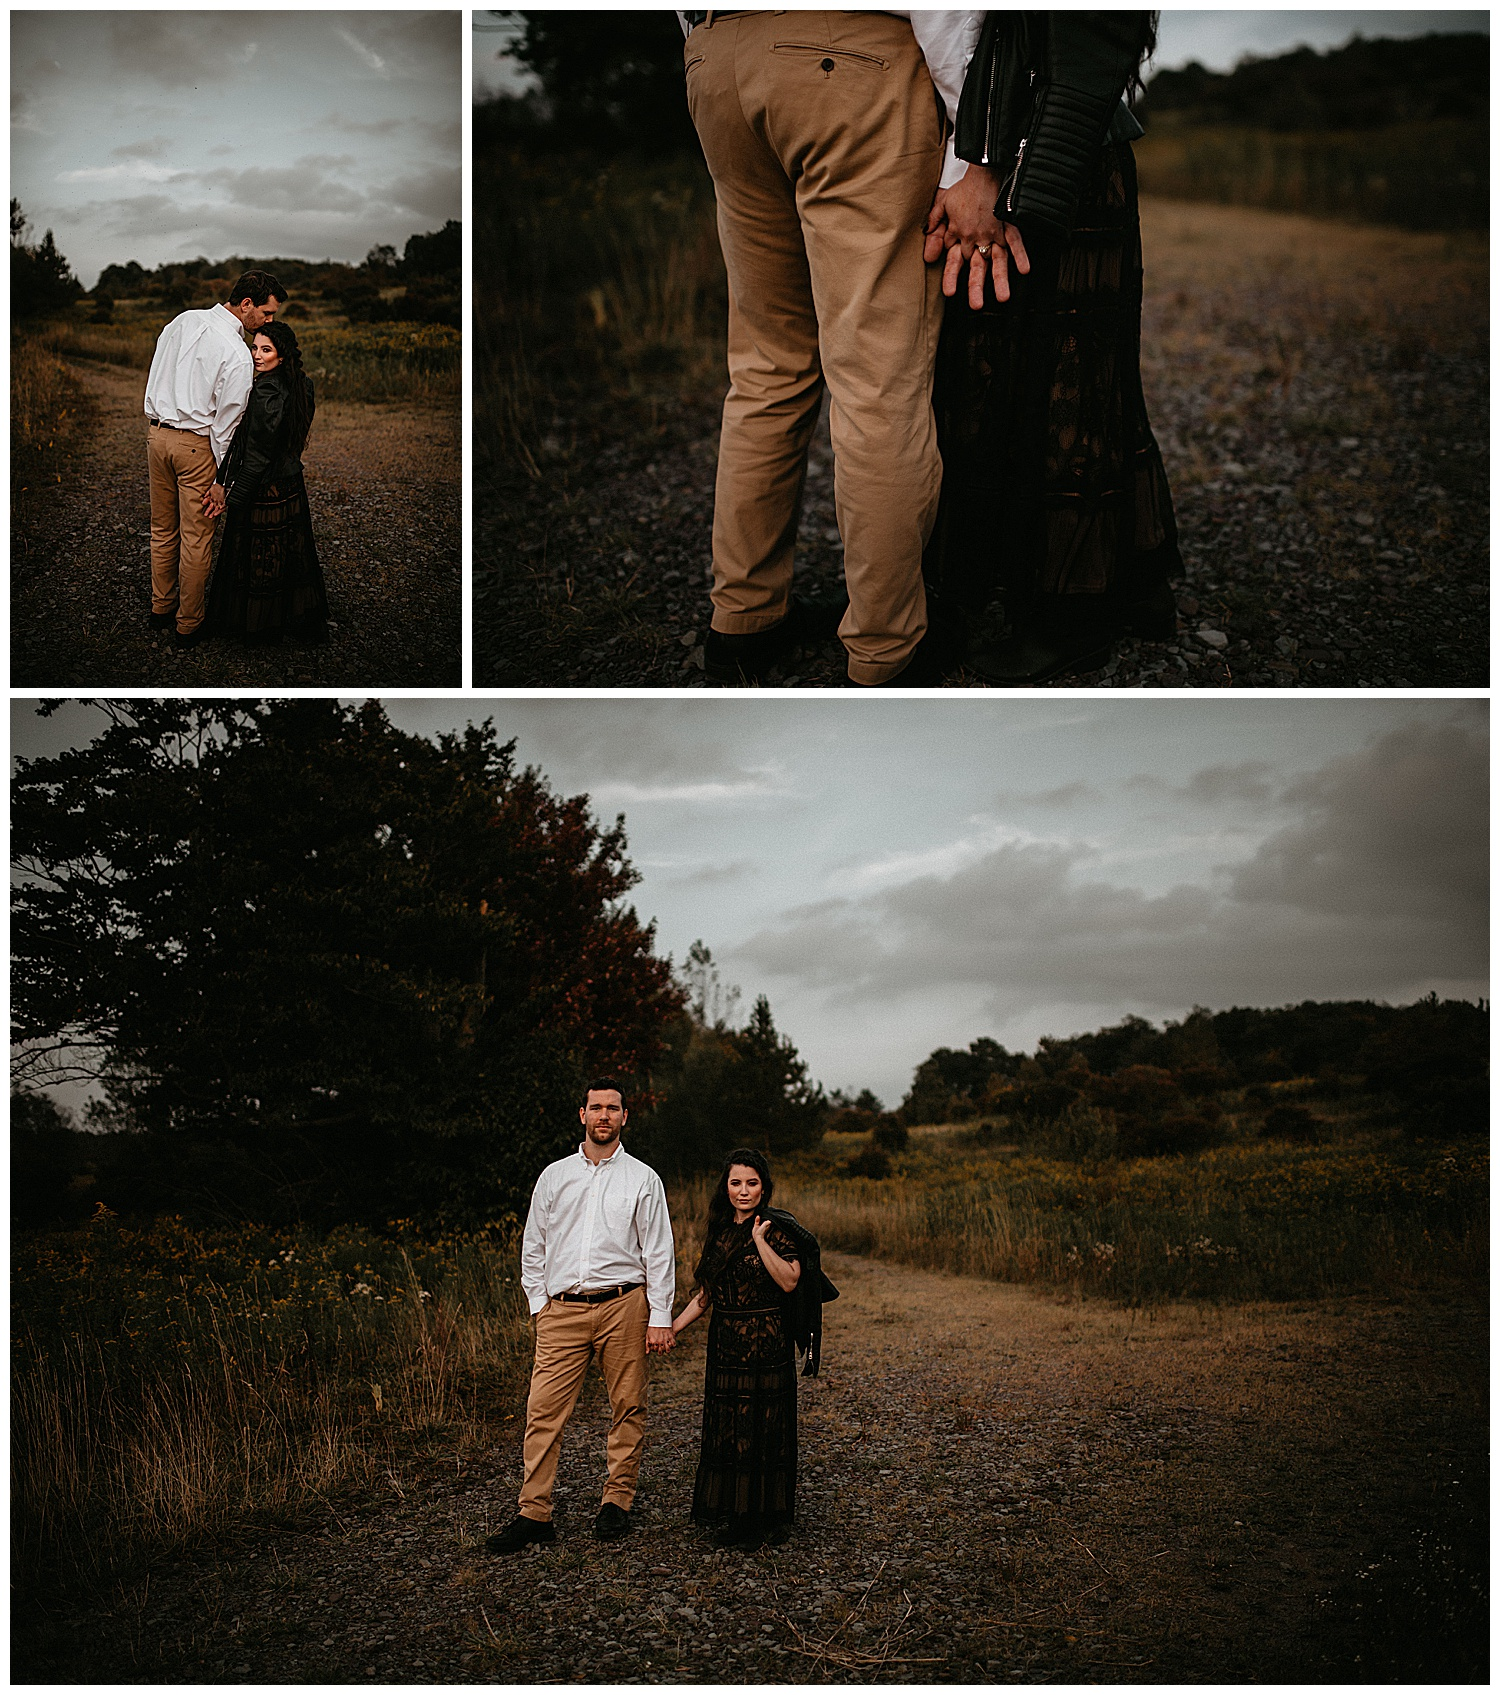 NEPA-Wedding-Engagement-Photographer-at-Ricketts-Glen-State-Park-Benton-PA_0028.jpg